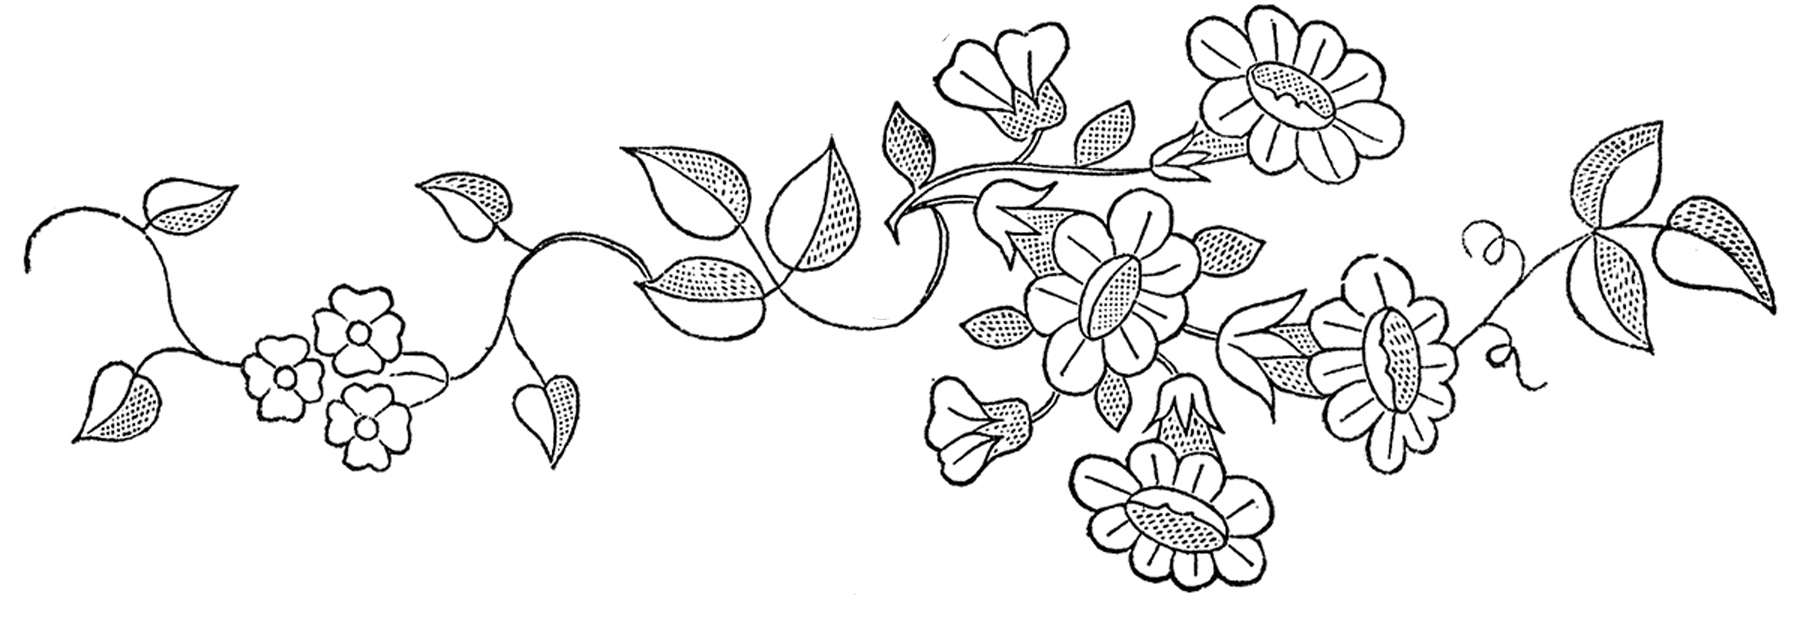 How To Make Hand Embroidery Patterns Hand Embroidery Patterns Digitemb